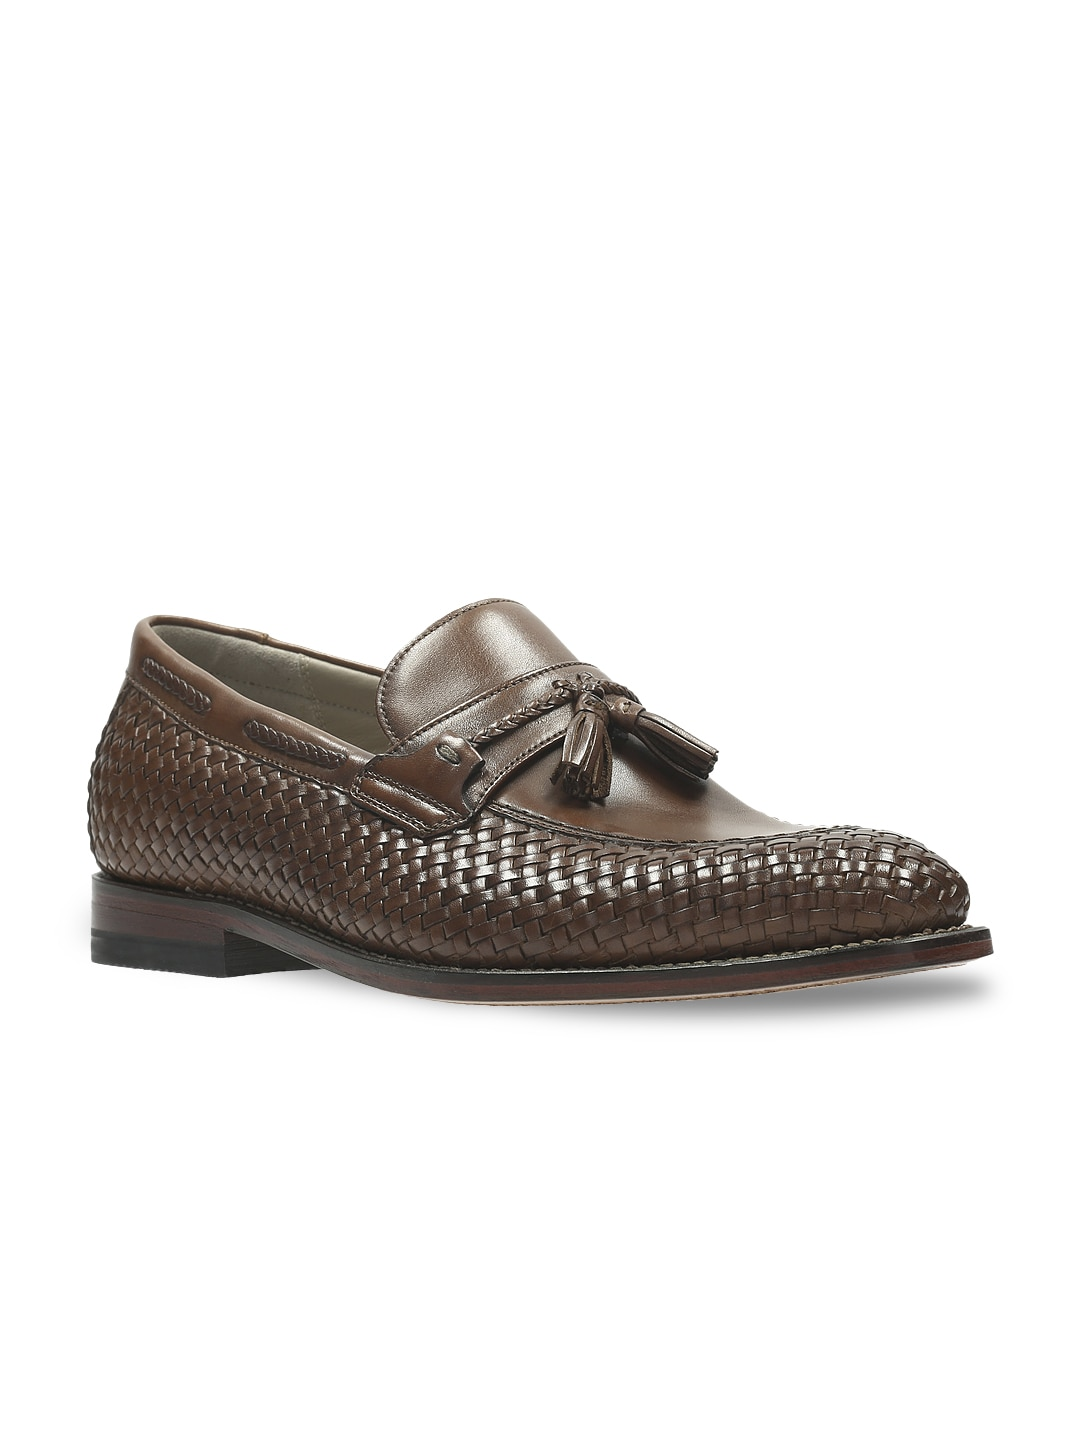 Clarks Men Brown Leather Formal Shoes image